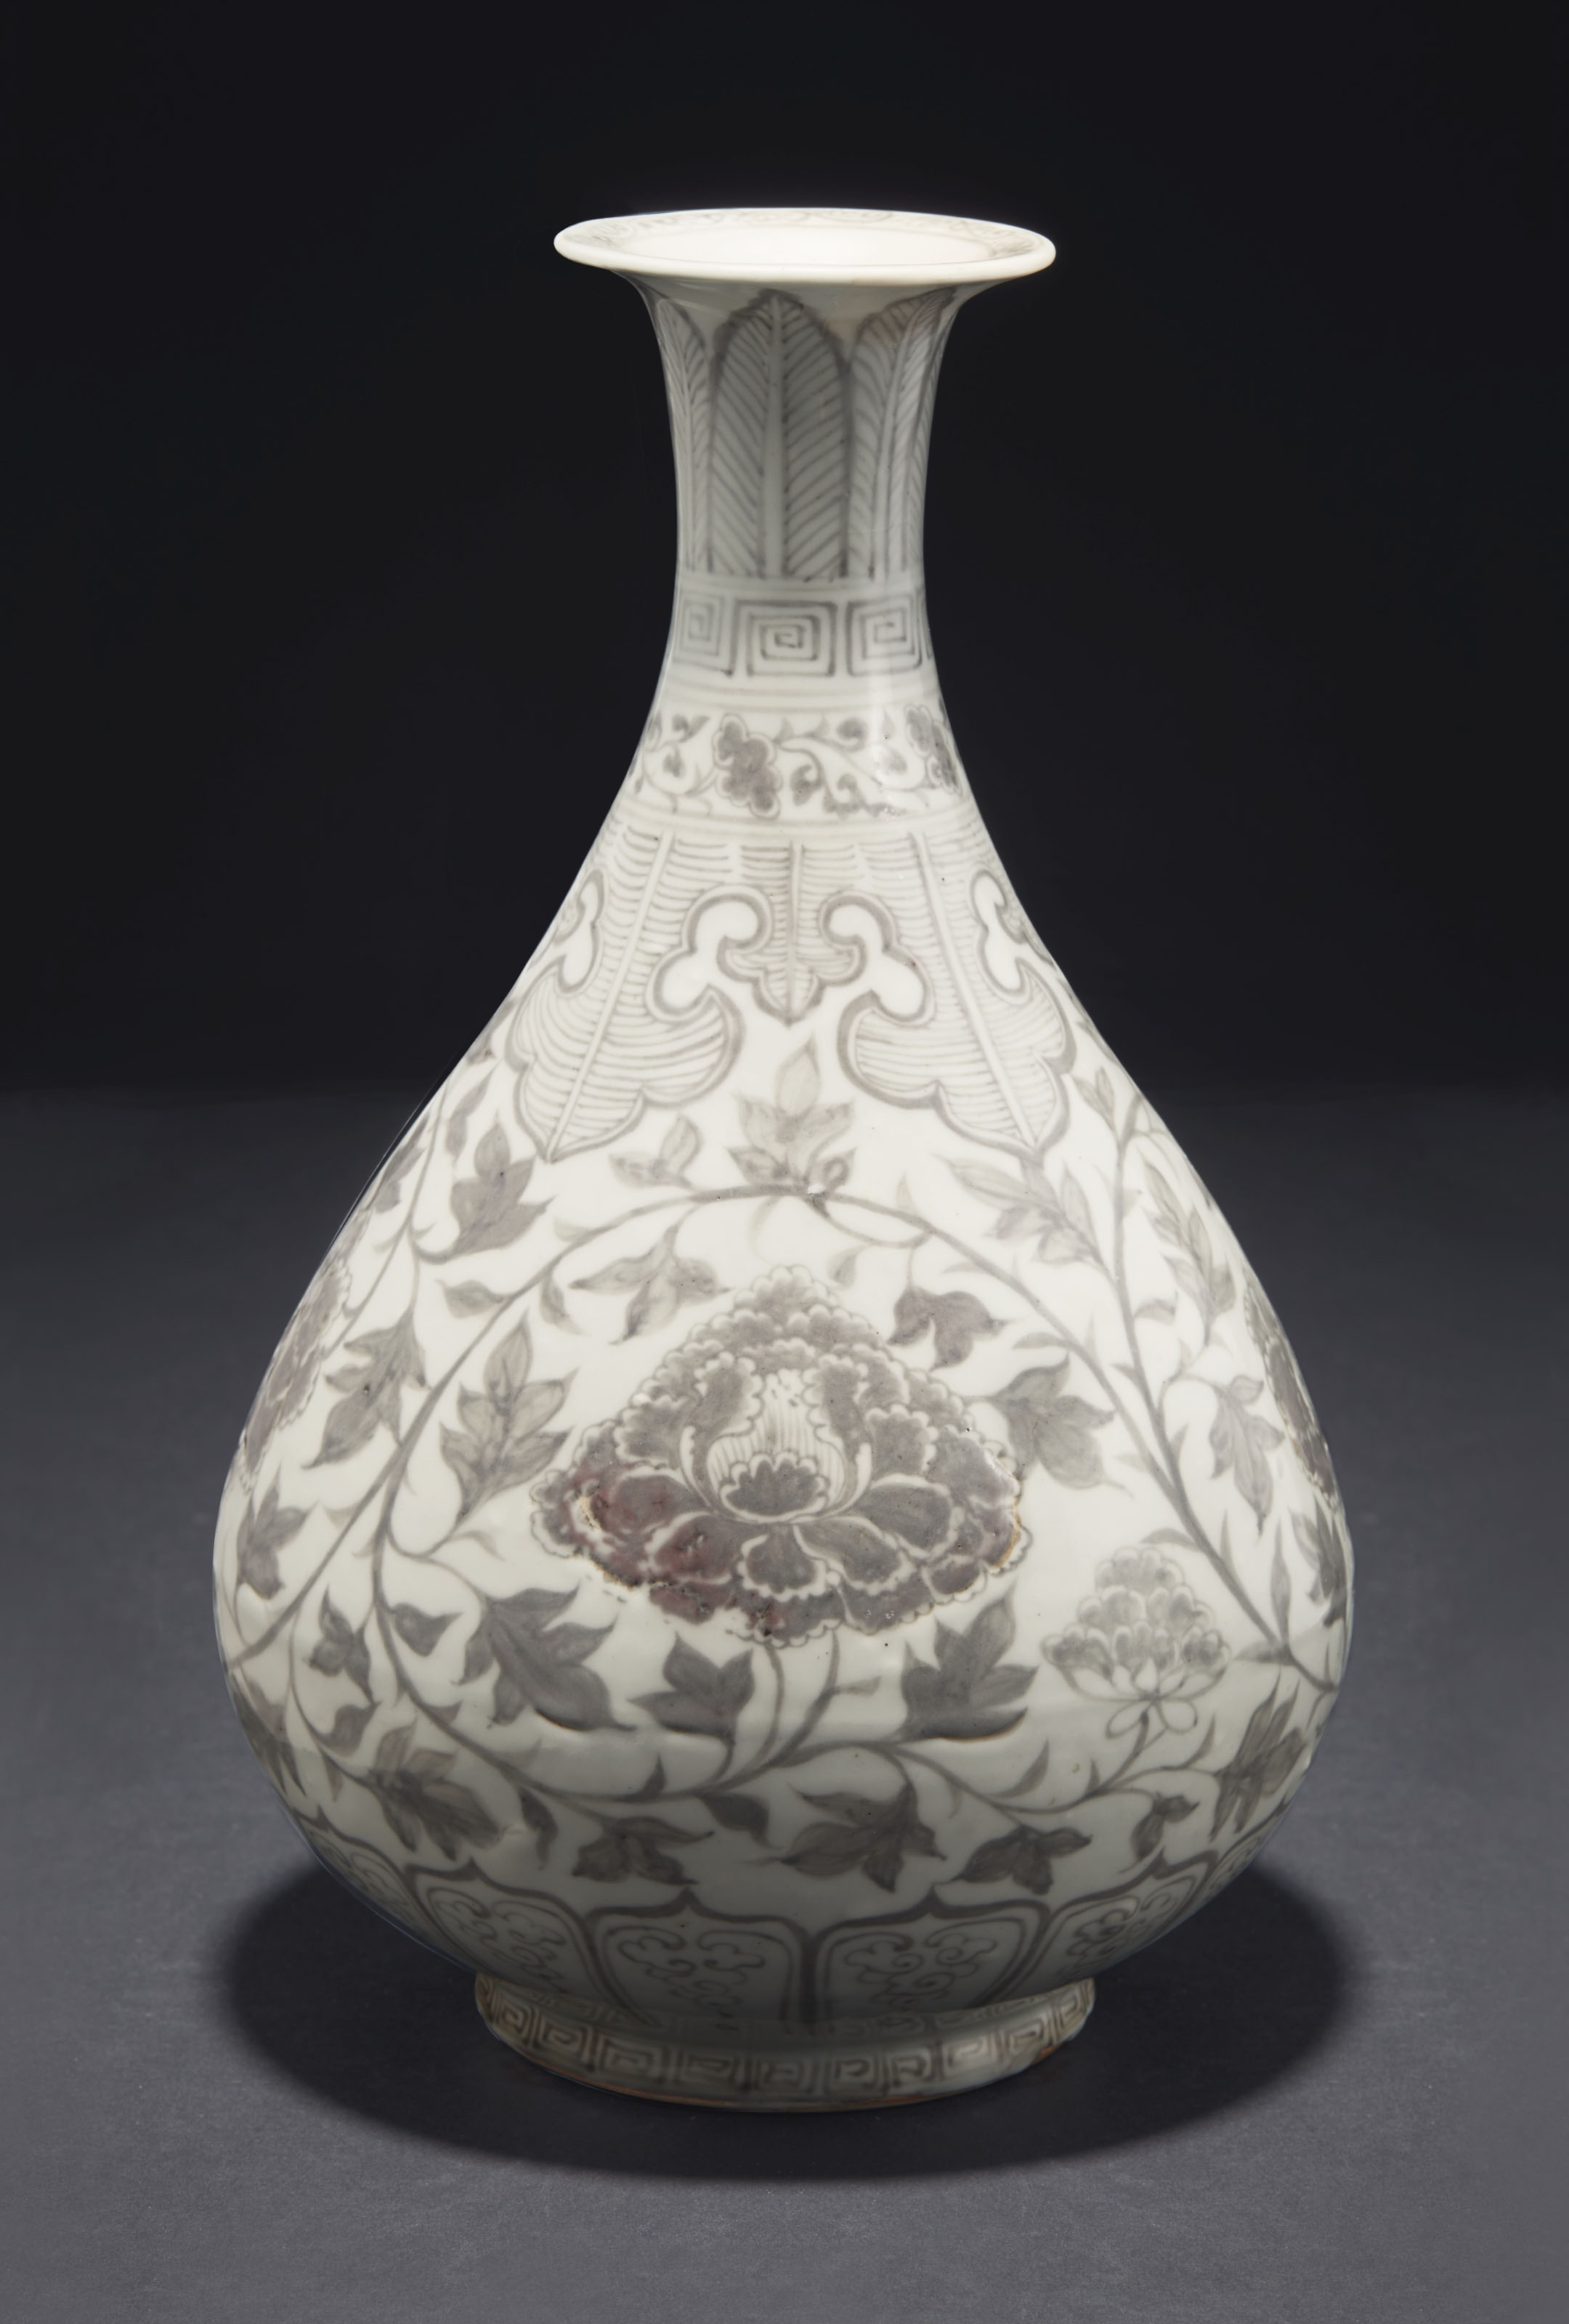 A RARE COPPER-RED-DECORATED 'PEONY SCROLL' BOTTLE VASE, YUHUCHUNPING